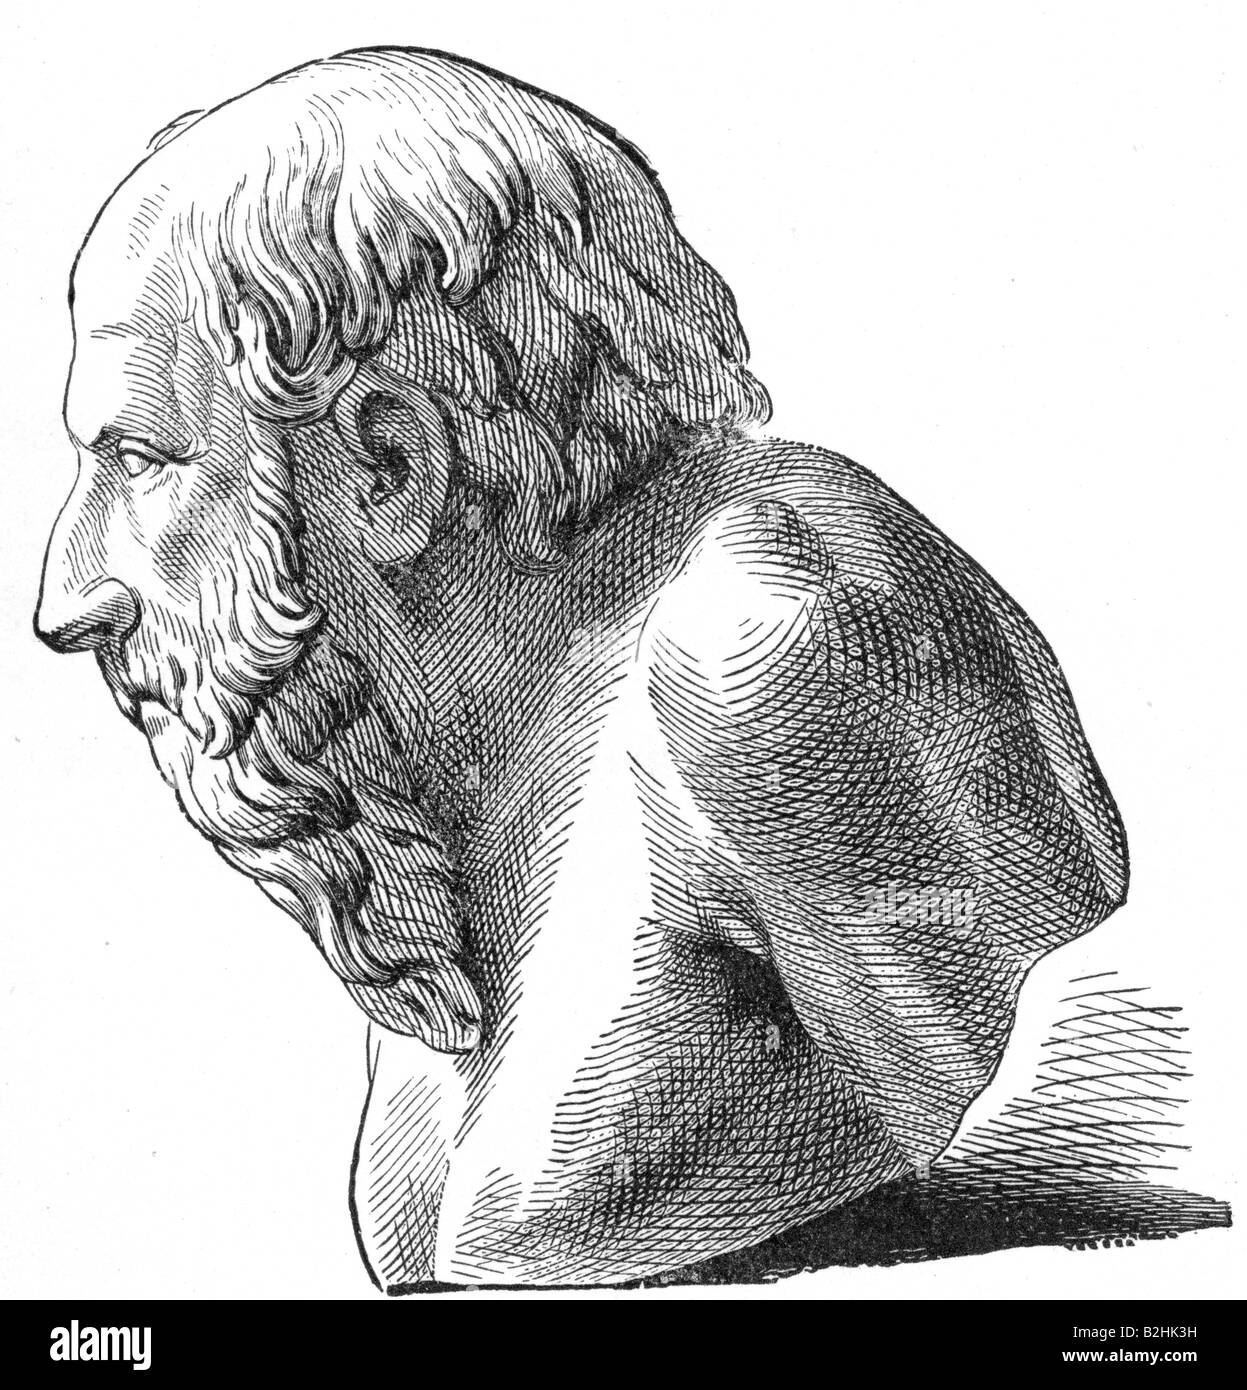 diogenes of sinope Diogenes also known as diogenes the cynic was a greek philosopher and one  of the founders of cynic philosophy he was born in sinope, an ionian colony on .